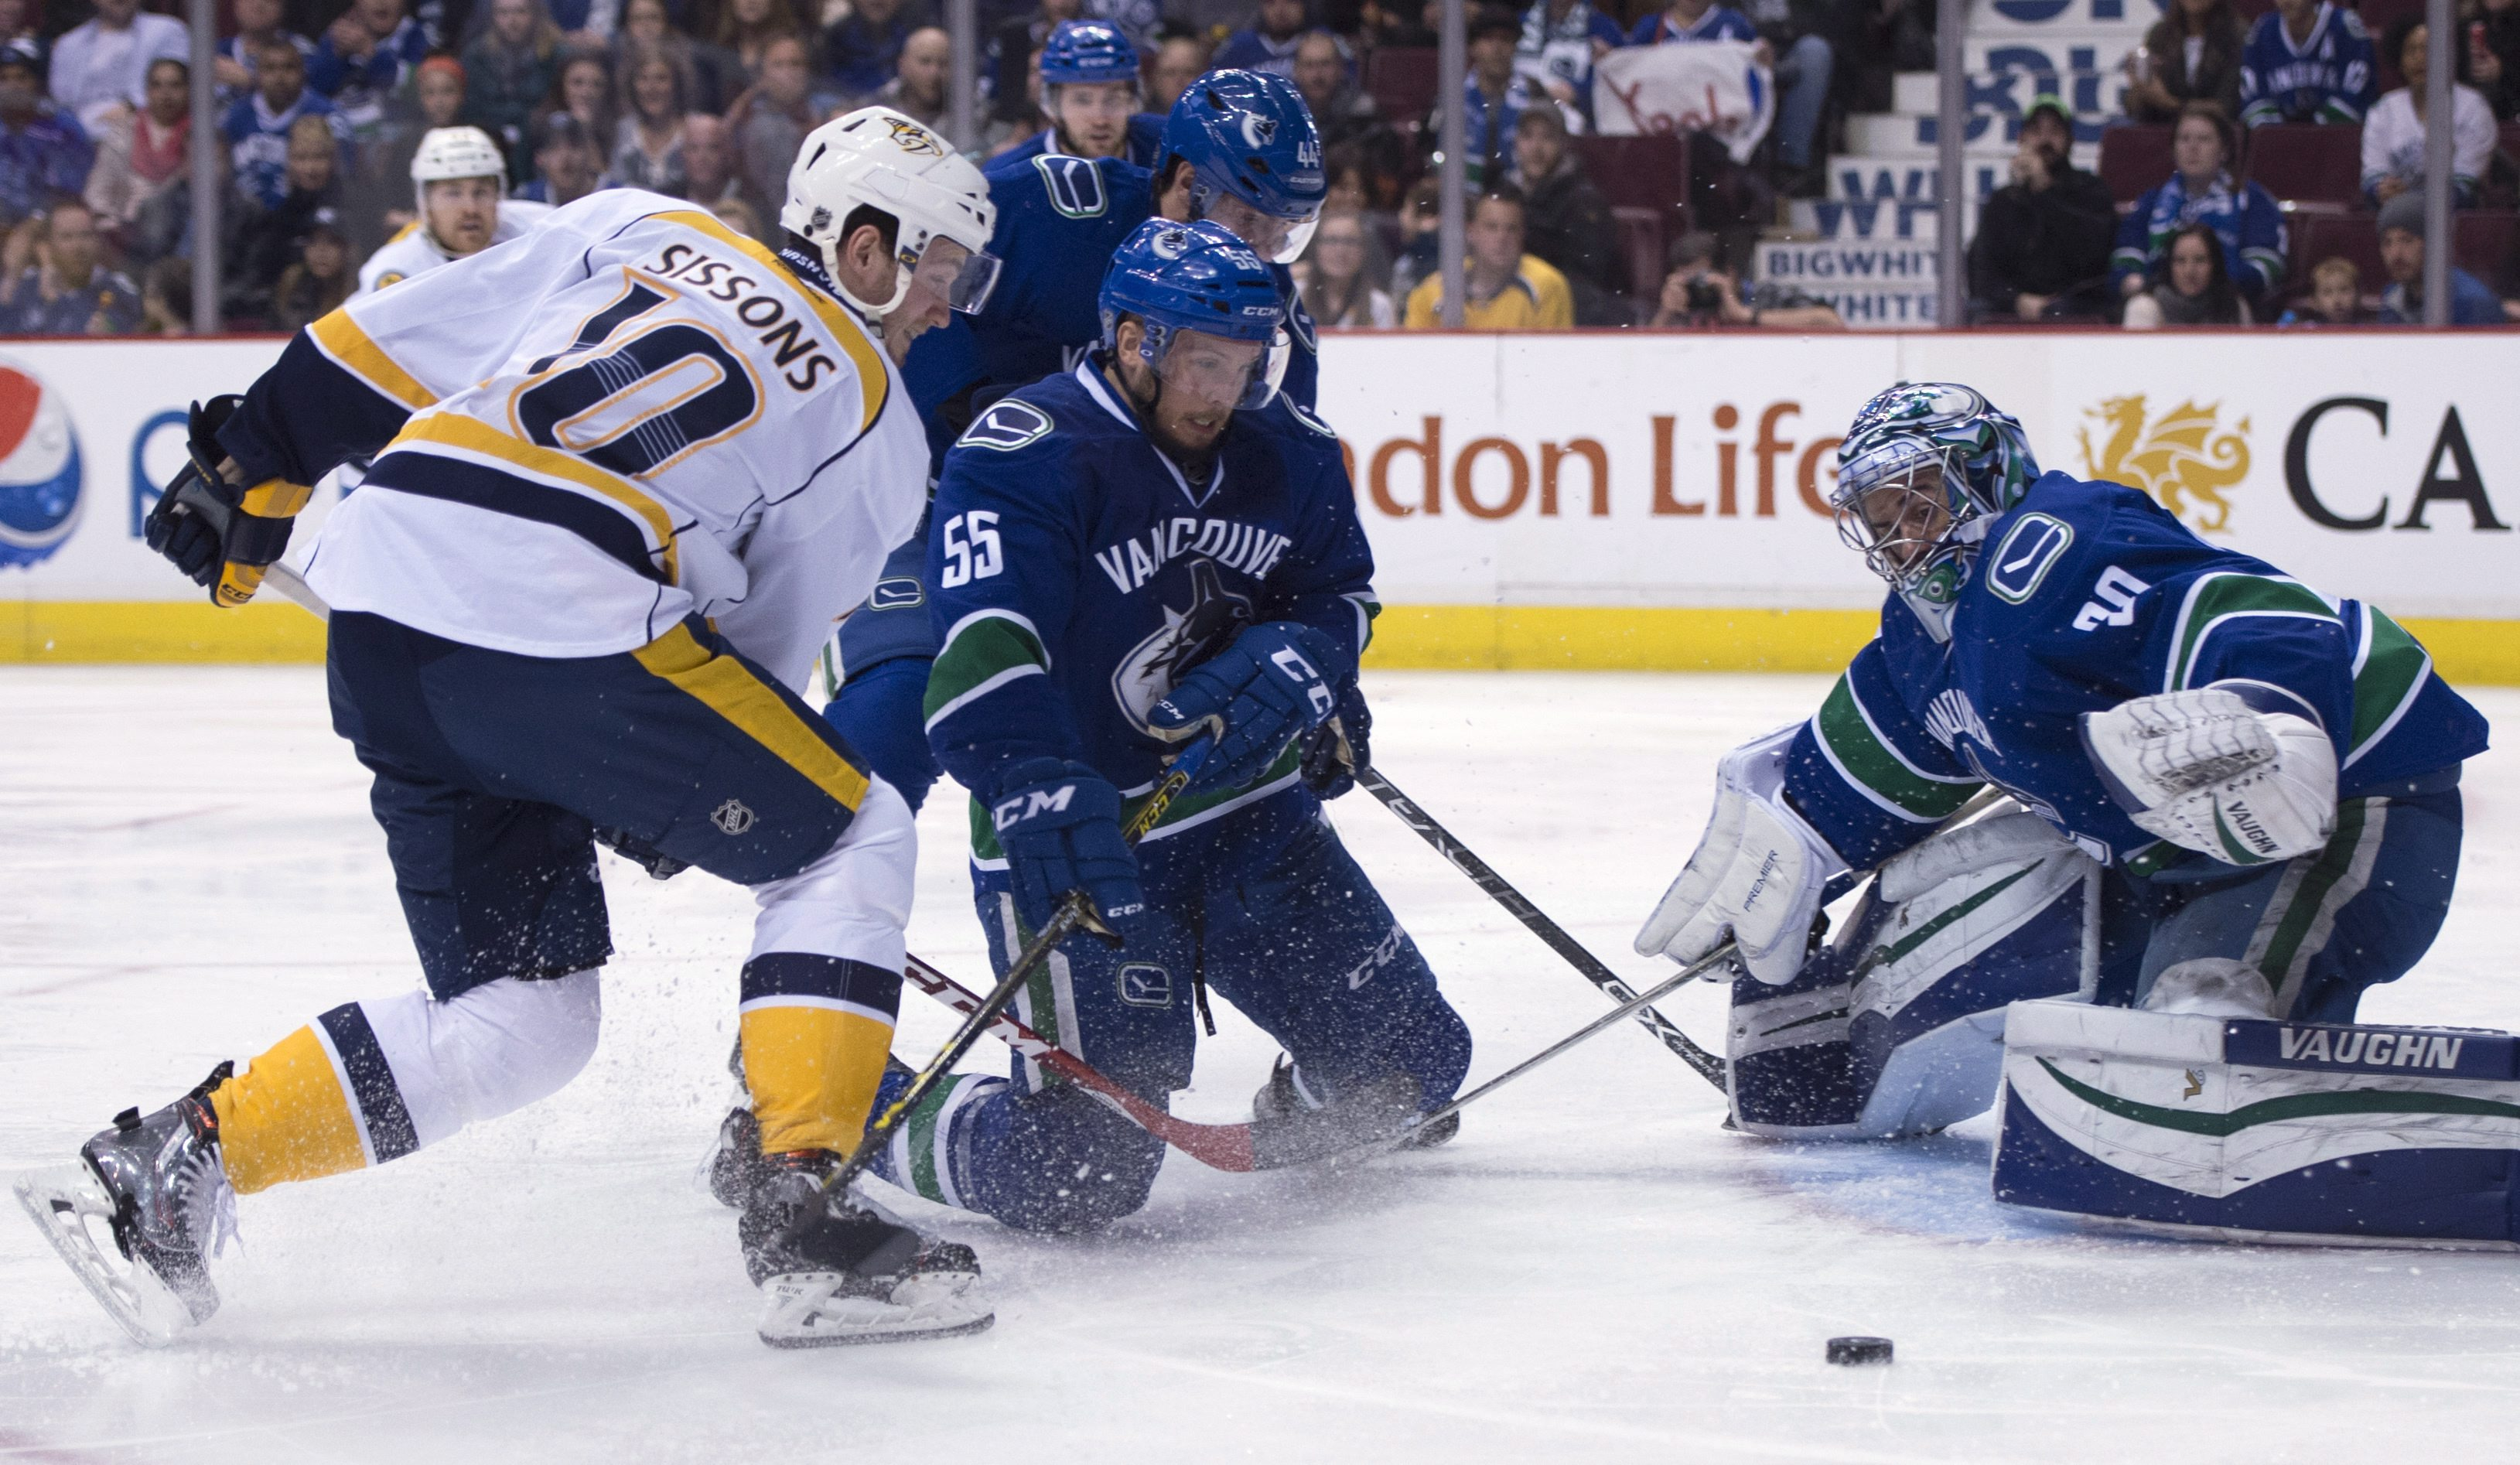 Vancouver Canucks defenseman Alex Biega (55) tries to stop a shot from Nashville Predators center Colton Sissons (10) as Canucks goalie Ryan Miller (30) watches during the first period of an NHL hockey game Saturday, March 12, 2016, in Vancouver, British